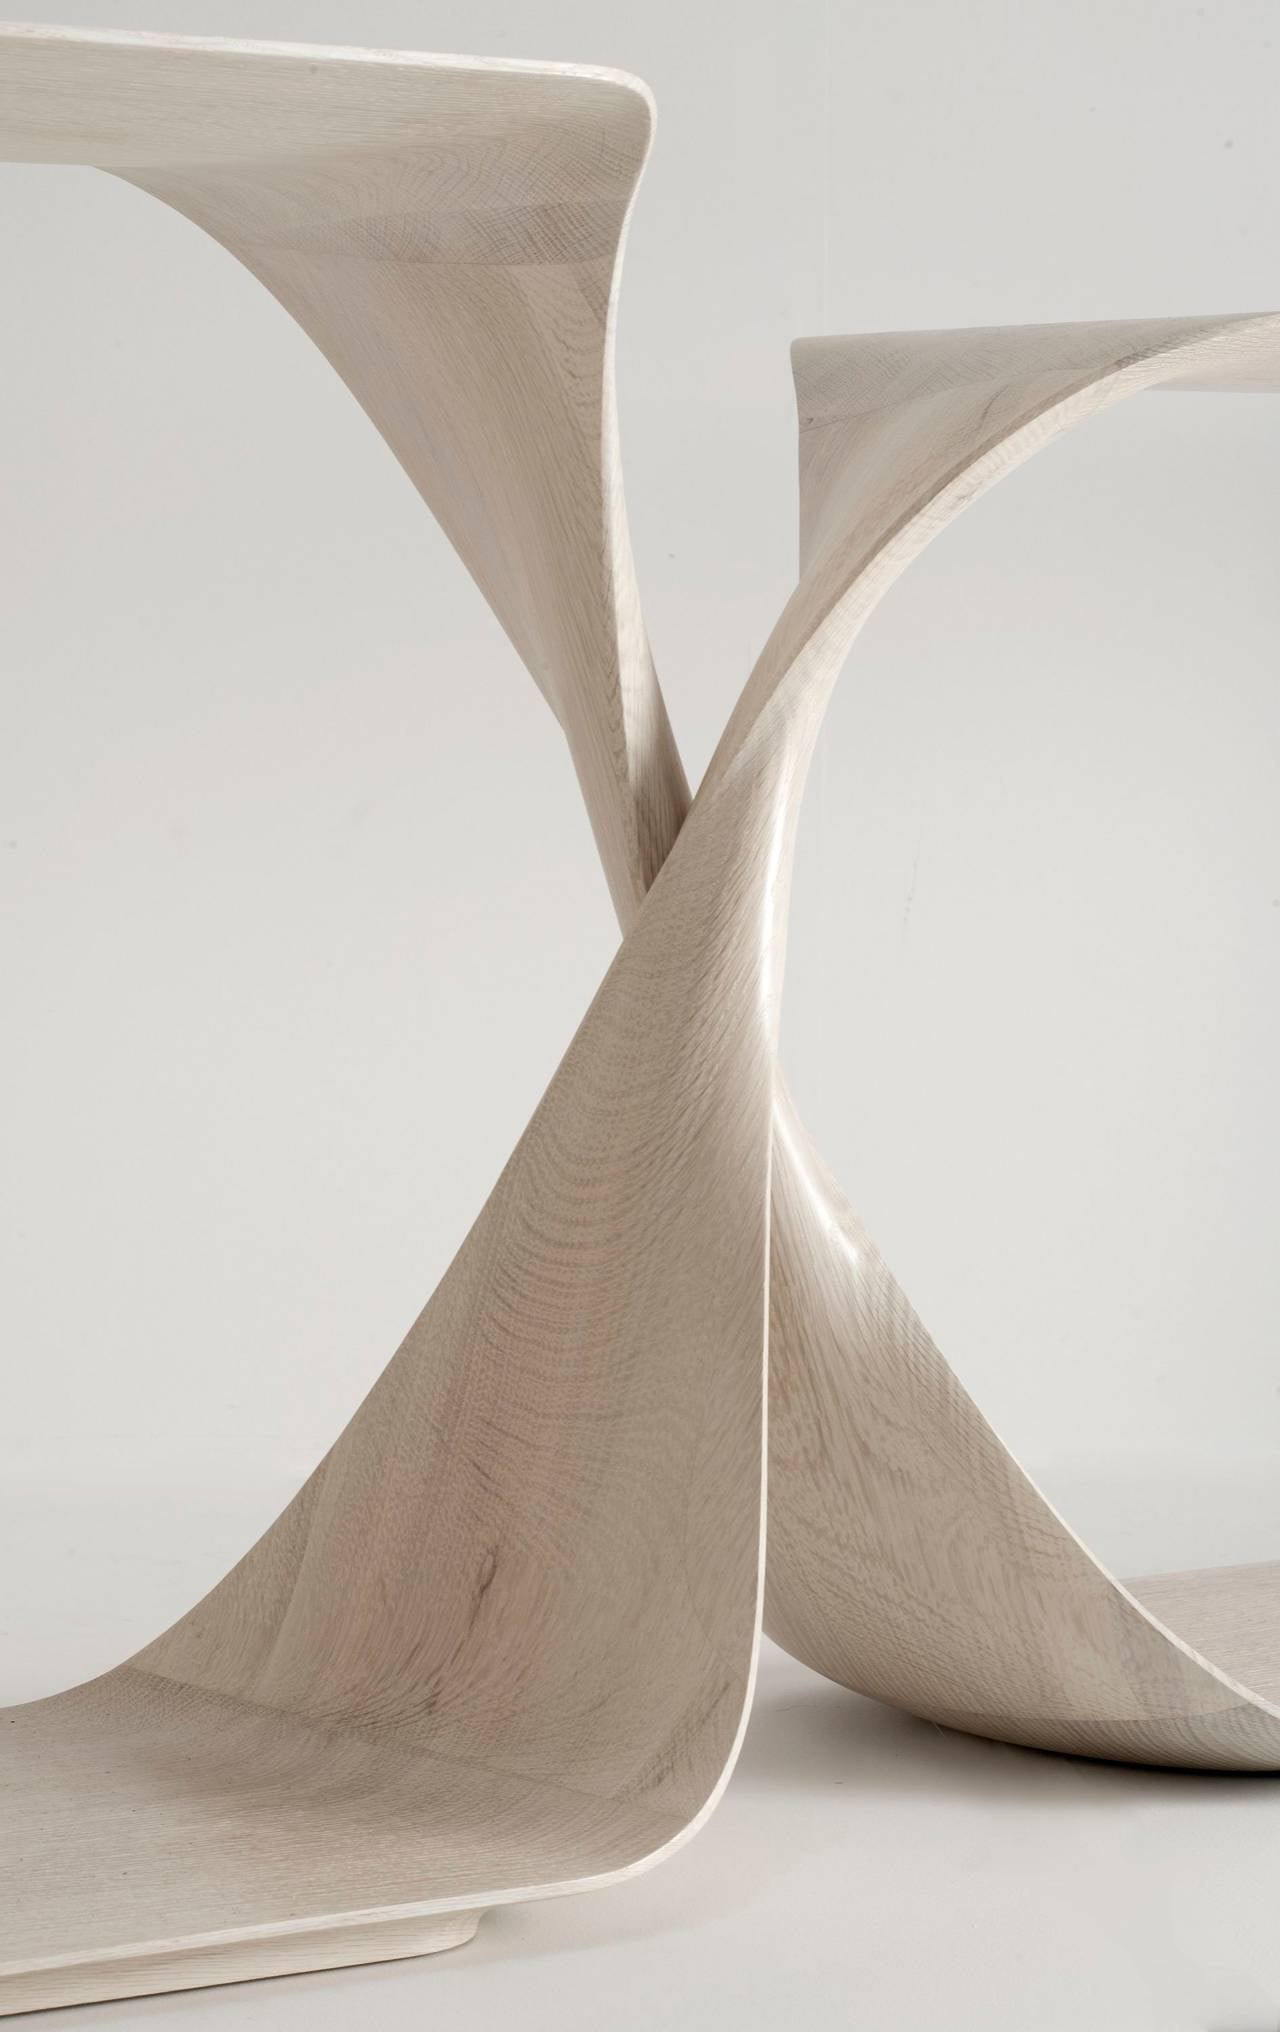 Contemporary freestanding sculptural console in hand-carved limed oak by Carol Egan.